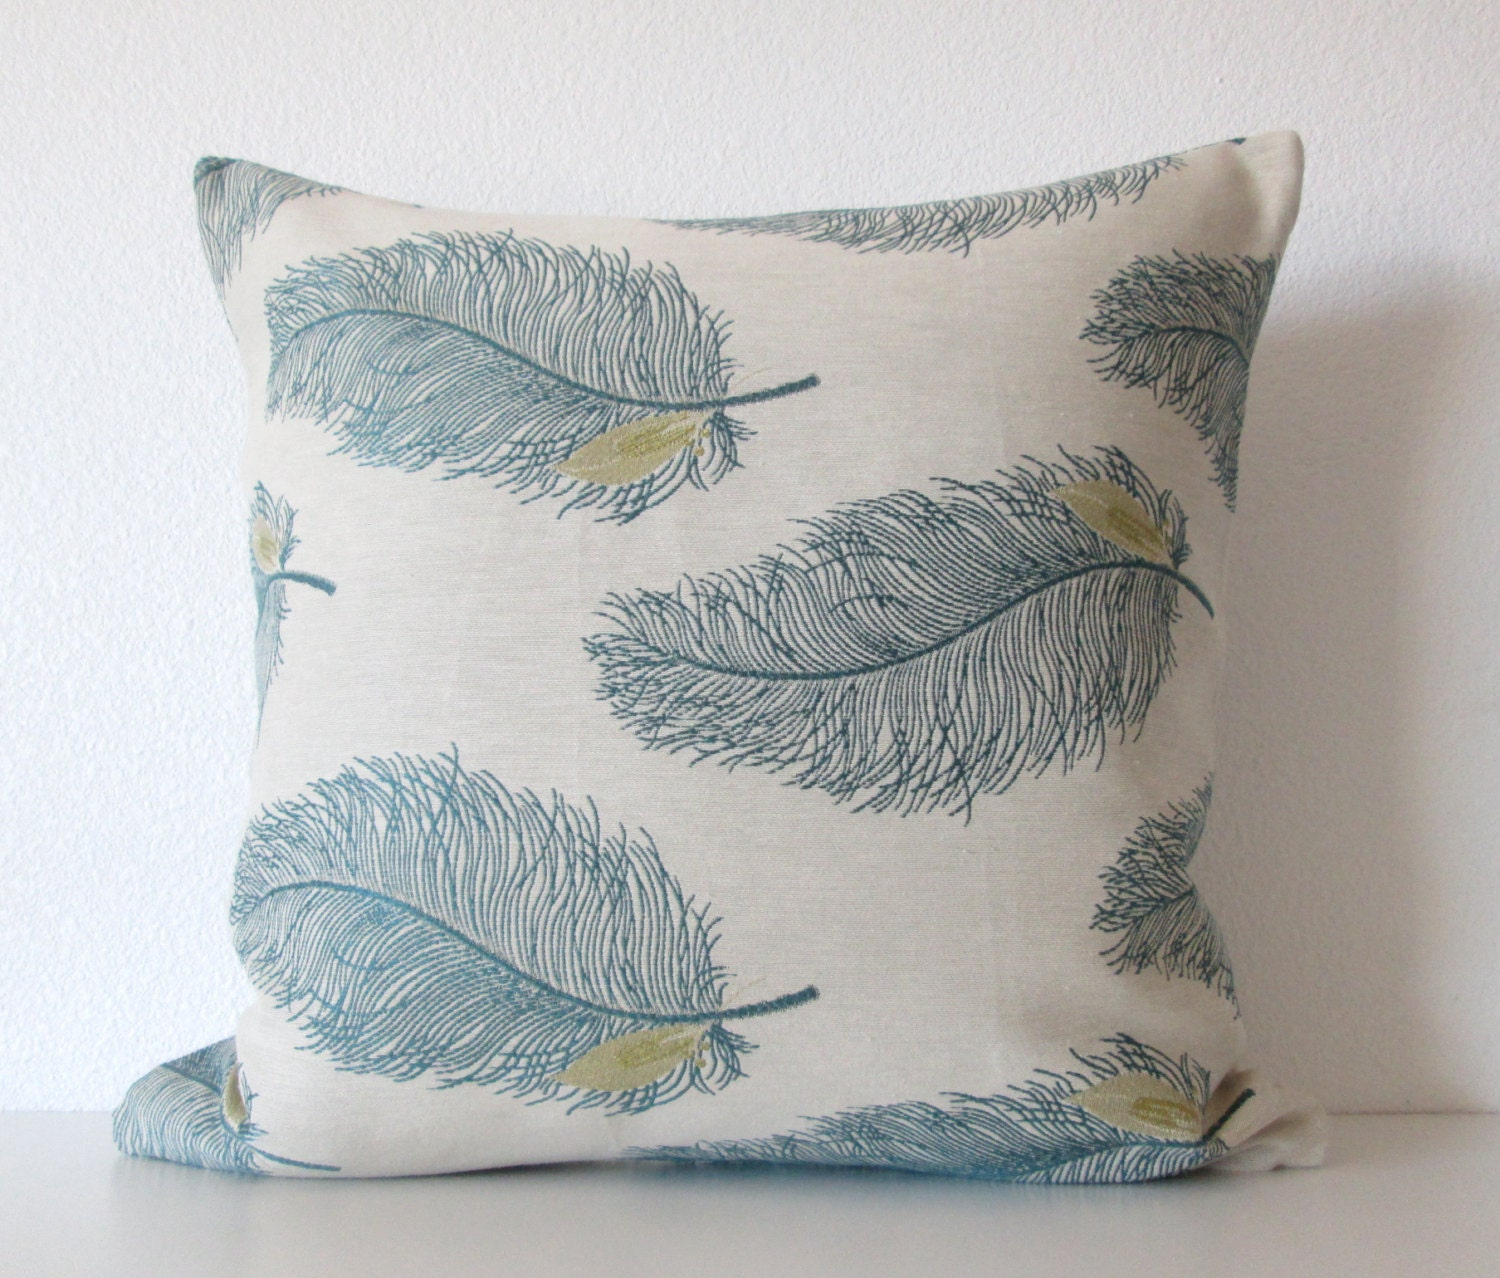 Teal And Cream Decorative Pillows : Decorative pillow cover Cream Teal Feathers Throw Pillow